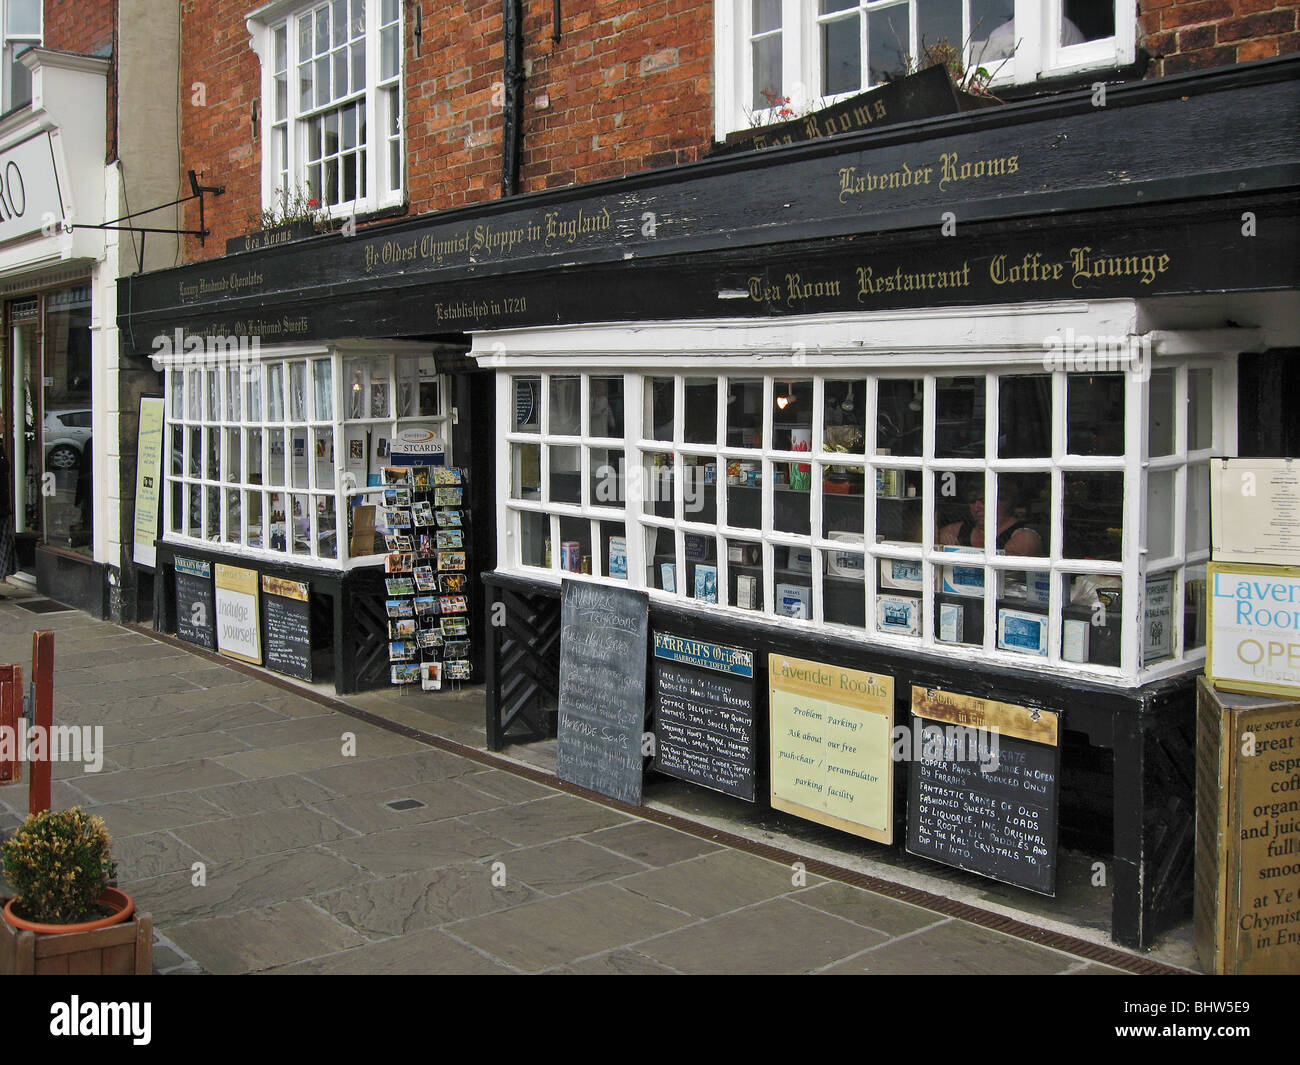 The oldest chemist shop in England Stock Photo